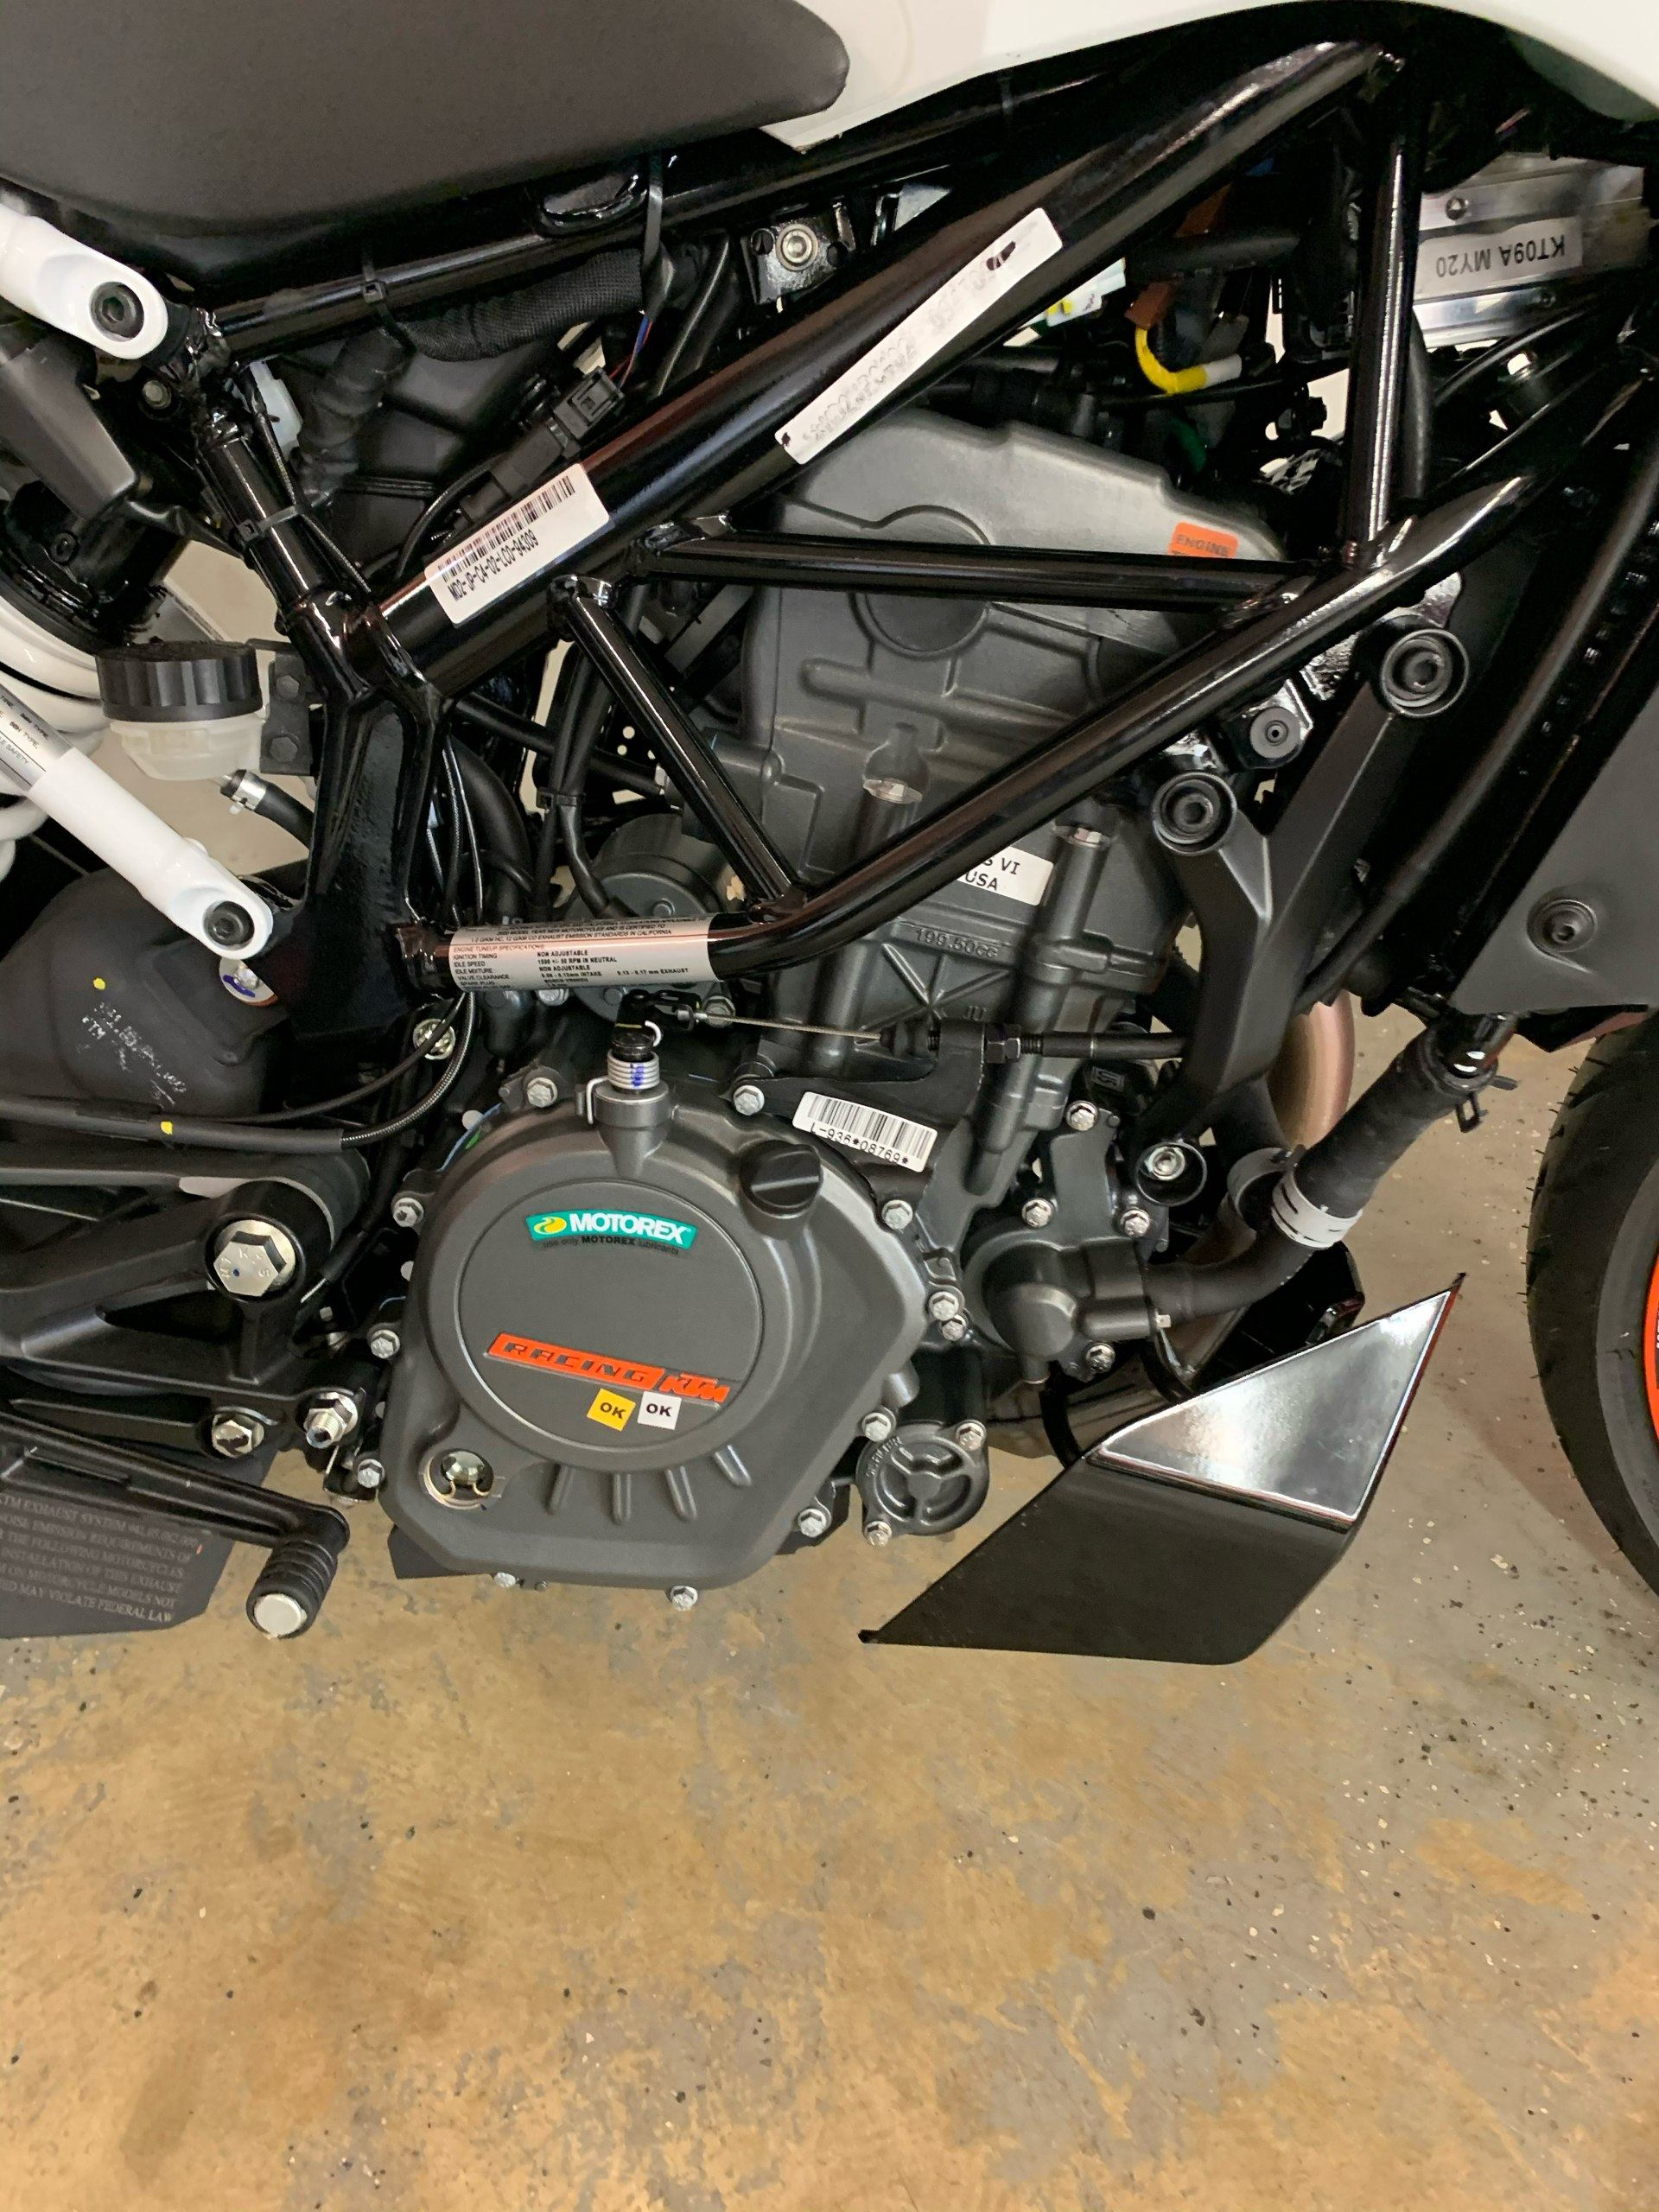 2020 KTM 200 Duke in Sioux Falls, South Dakota - Photo 4